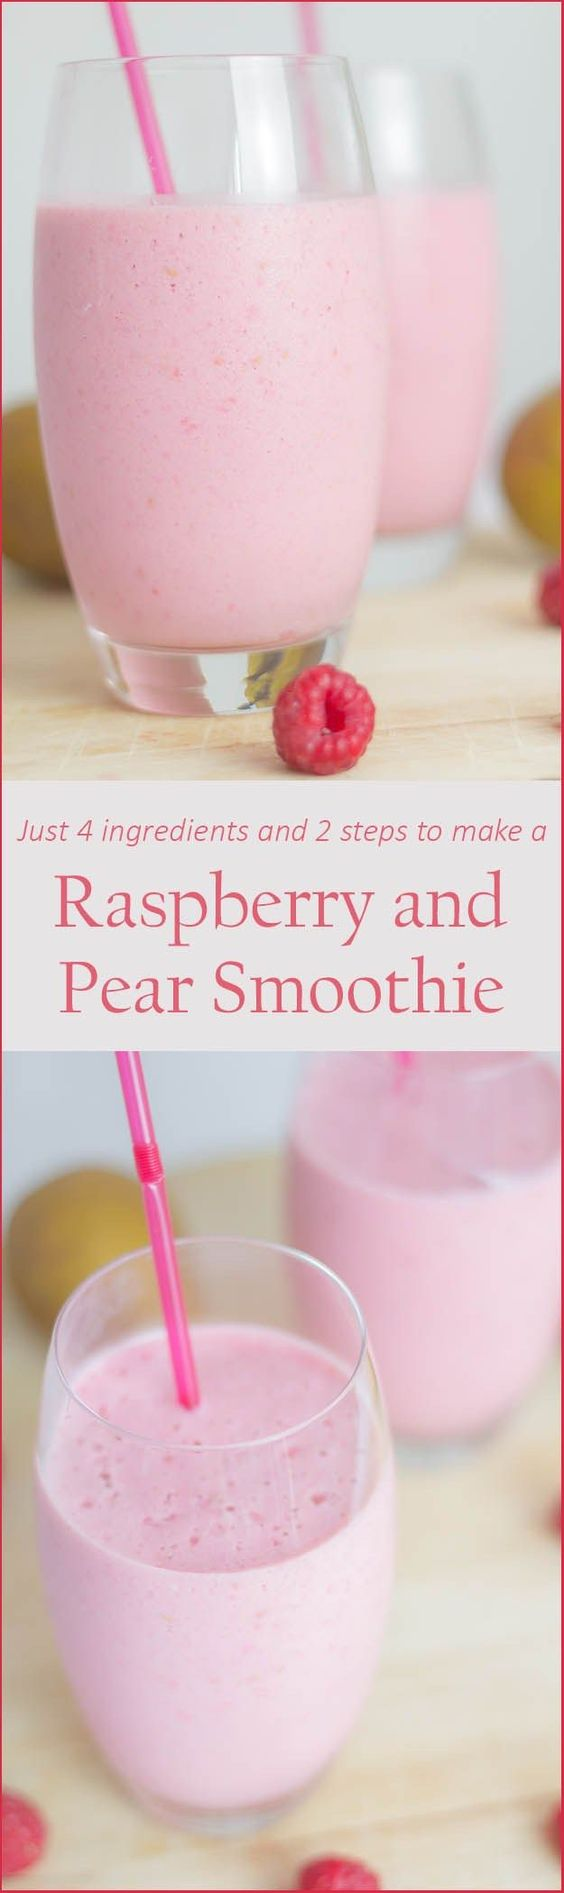 Raspberry and Pear Smoothie Recipe via Neil's Healthy Meals - A delicious and naturally sweetened breakfast or pick me up snack smoothie. Creamy tasting and with plenty of zing.